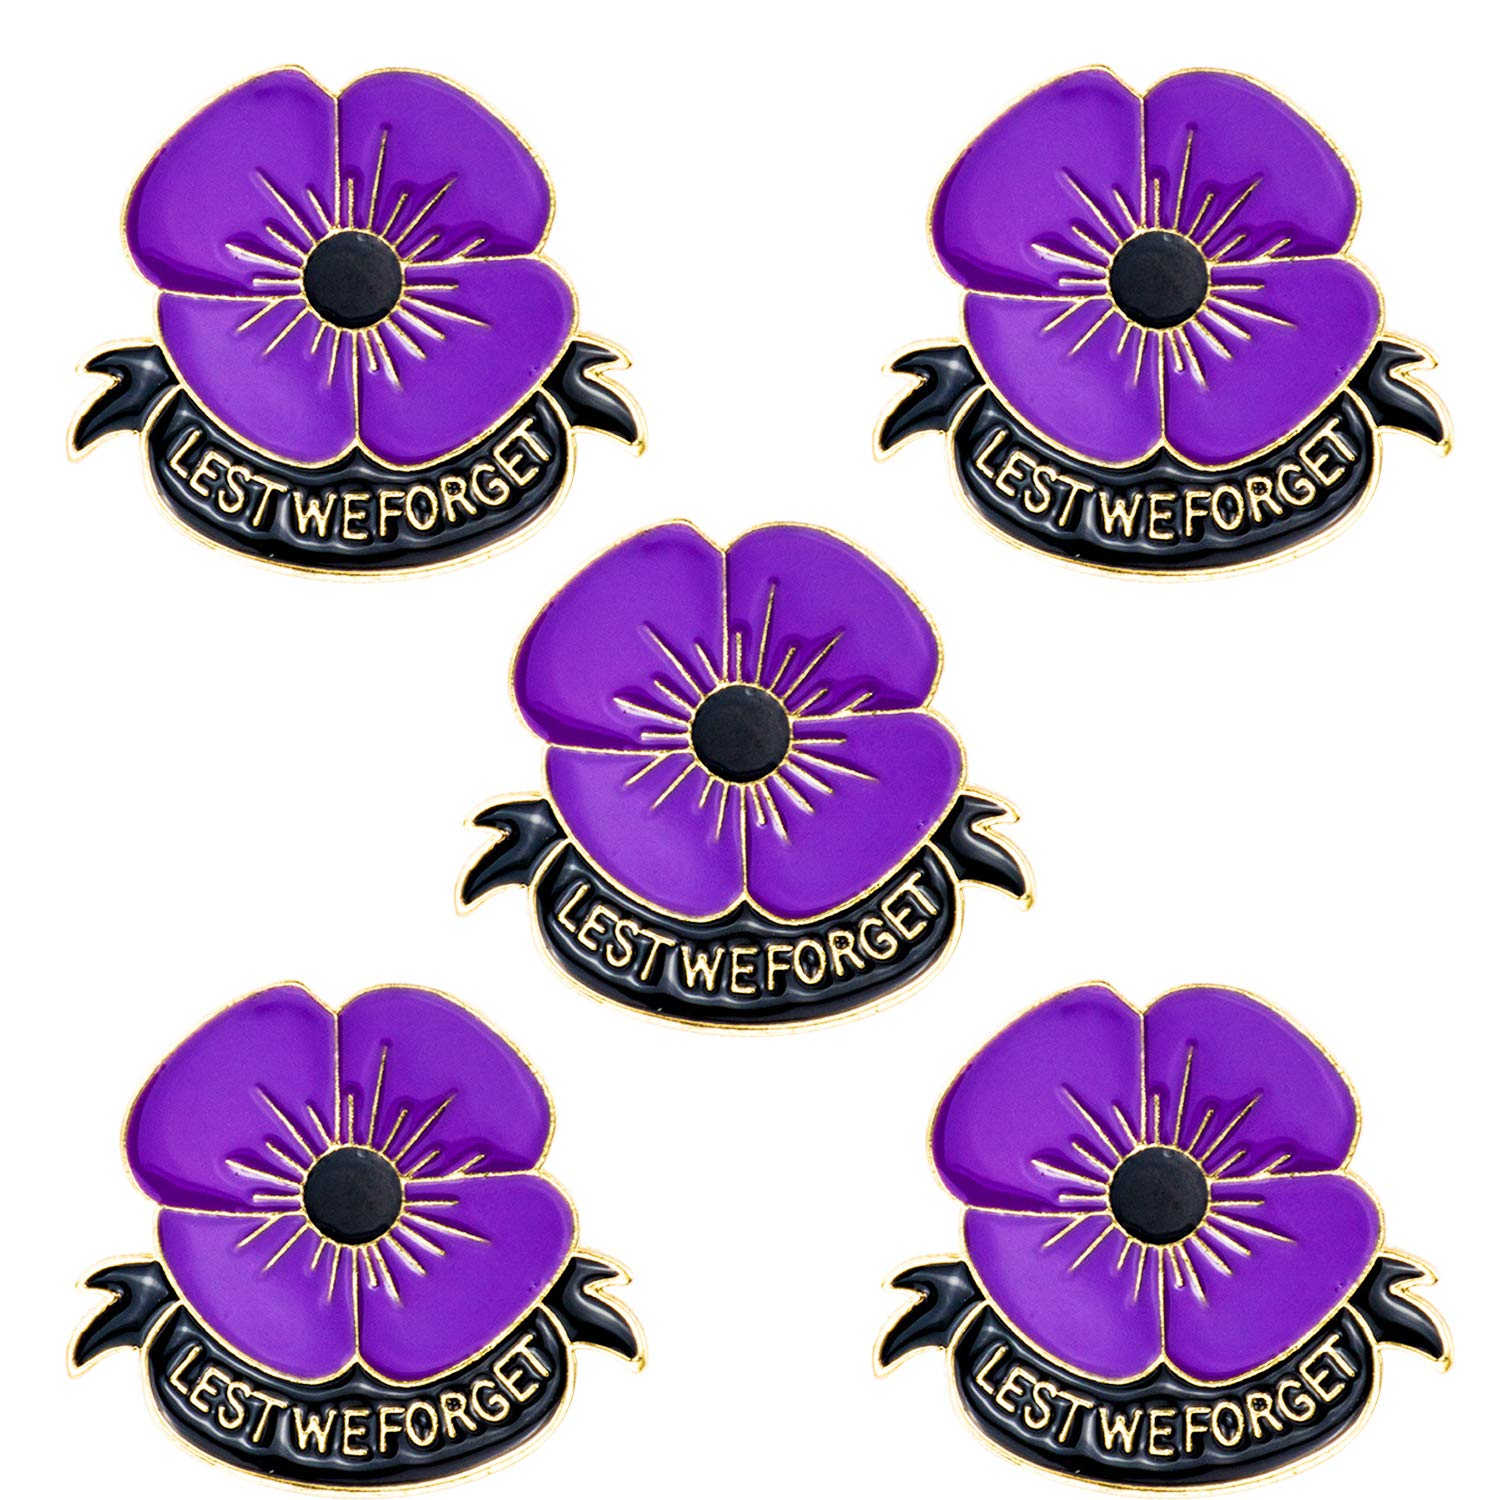 JLJ Poppy Brooch Pins Lest We Forget Veterans Day Memorial Day Remembrance Day